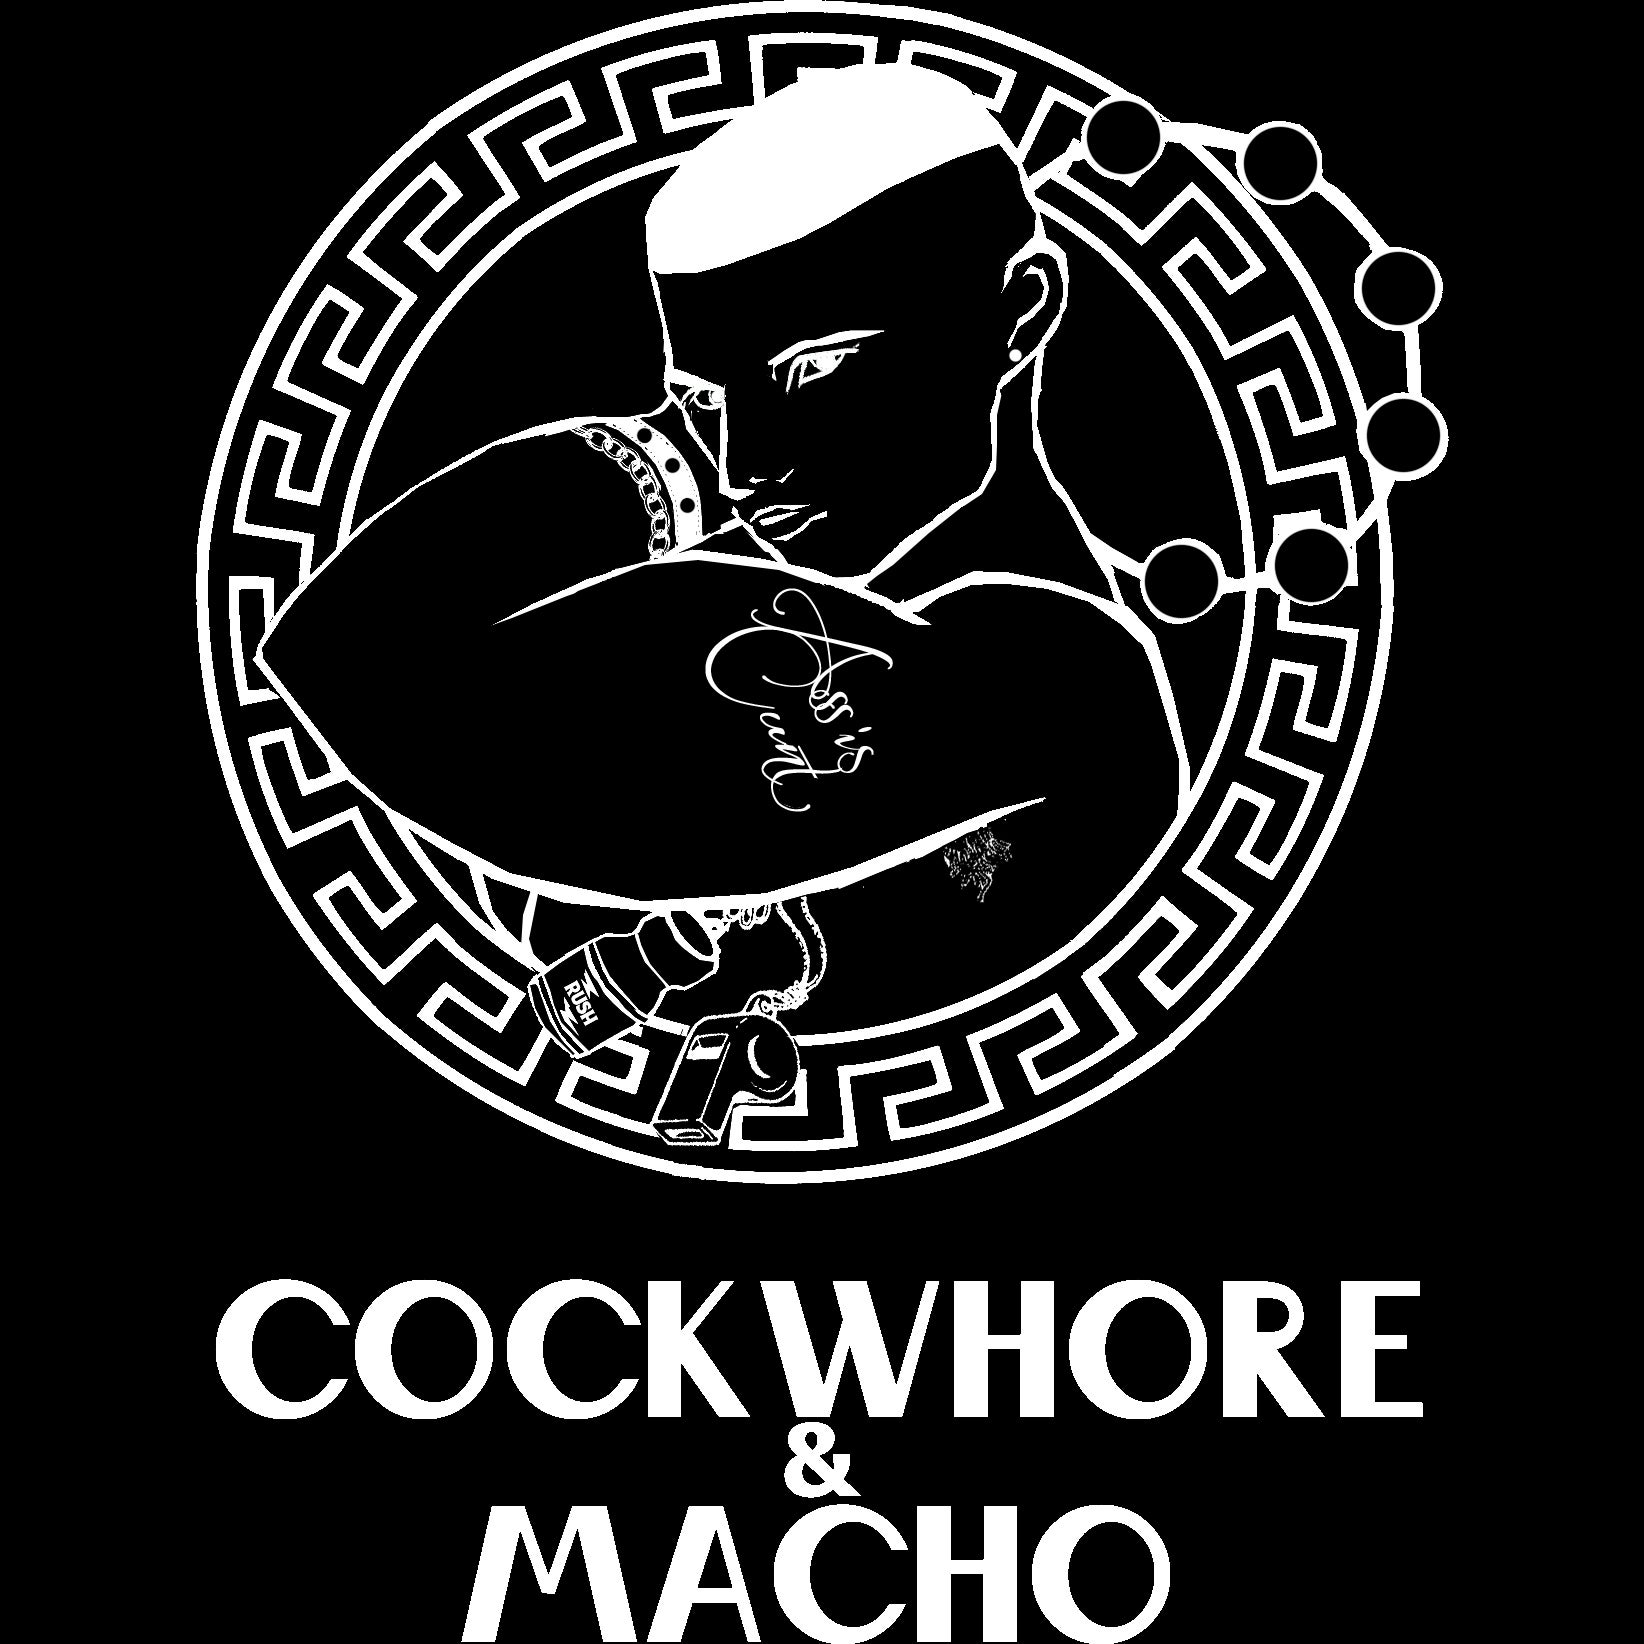 COCKWHORE & MACHO